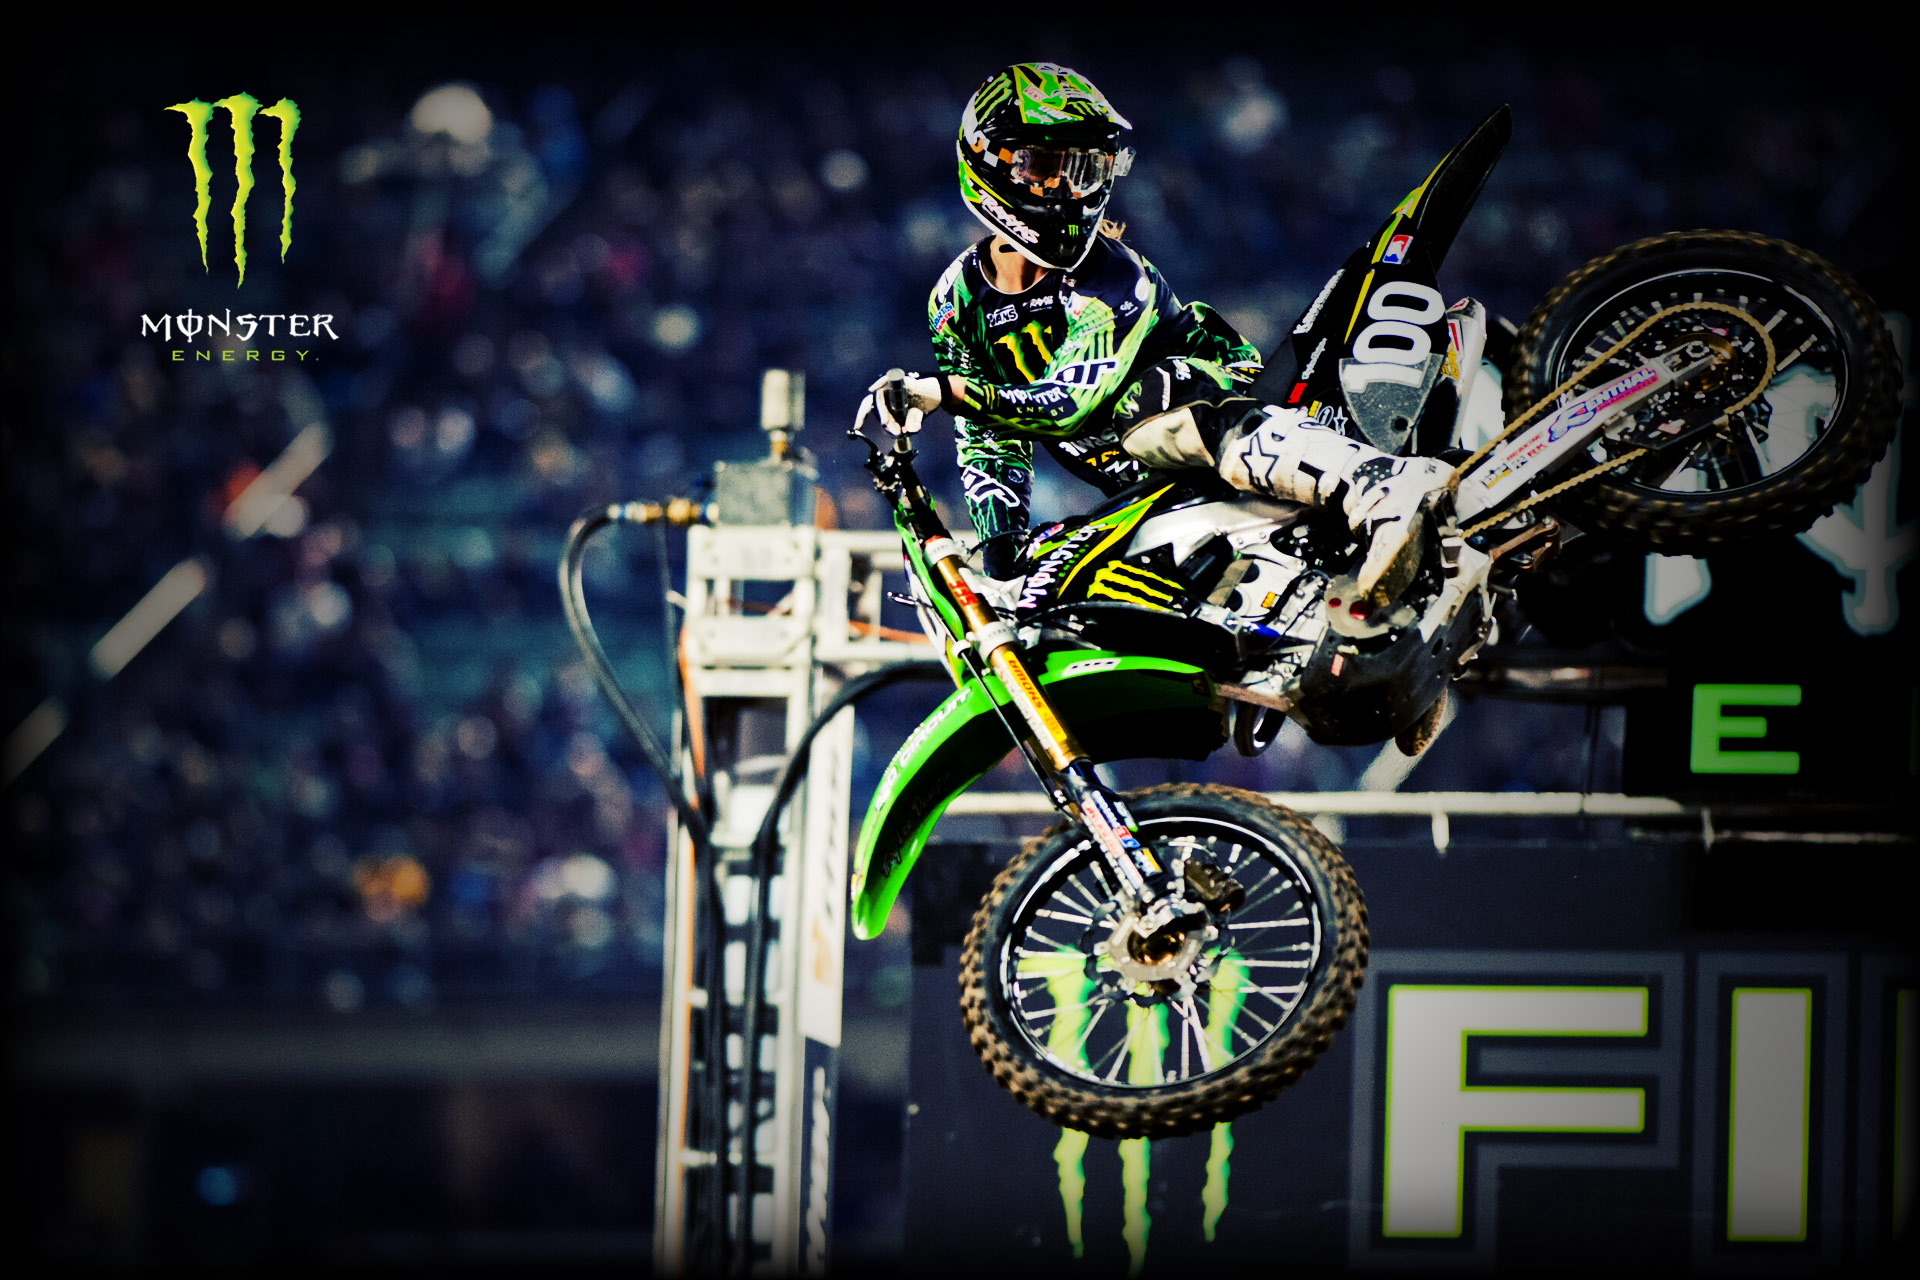 Exceptionnel Monster Energy Motocross Wallpaper 54107